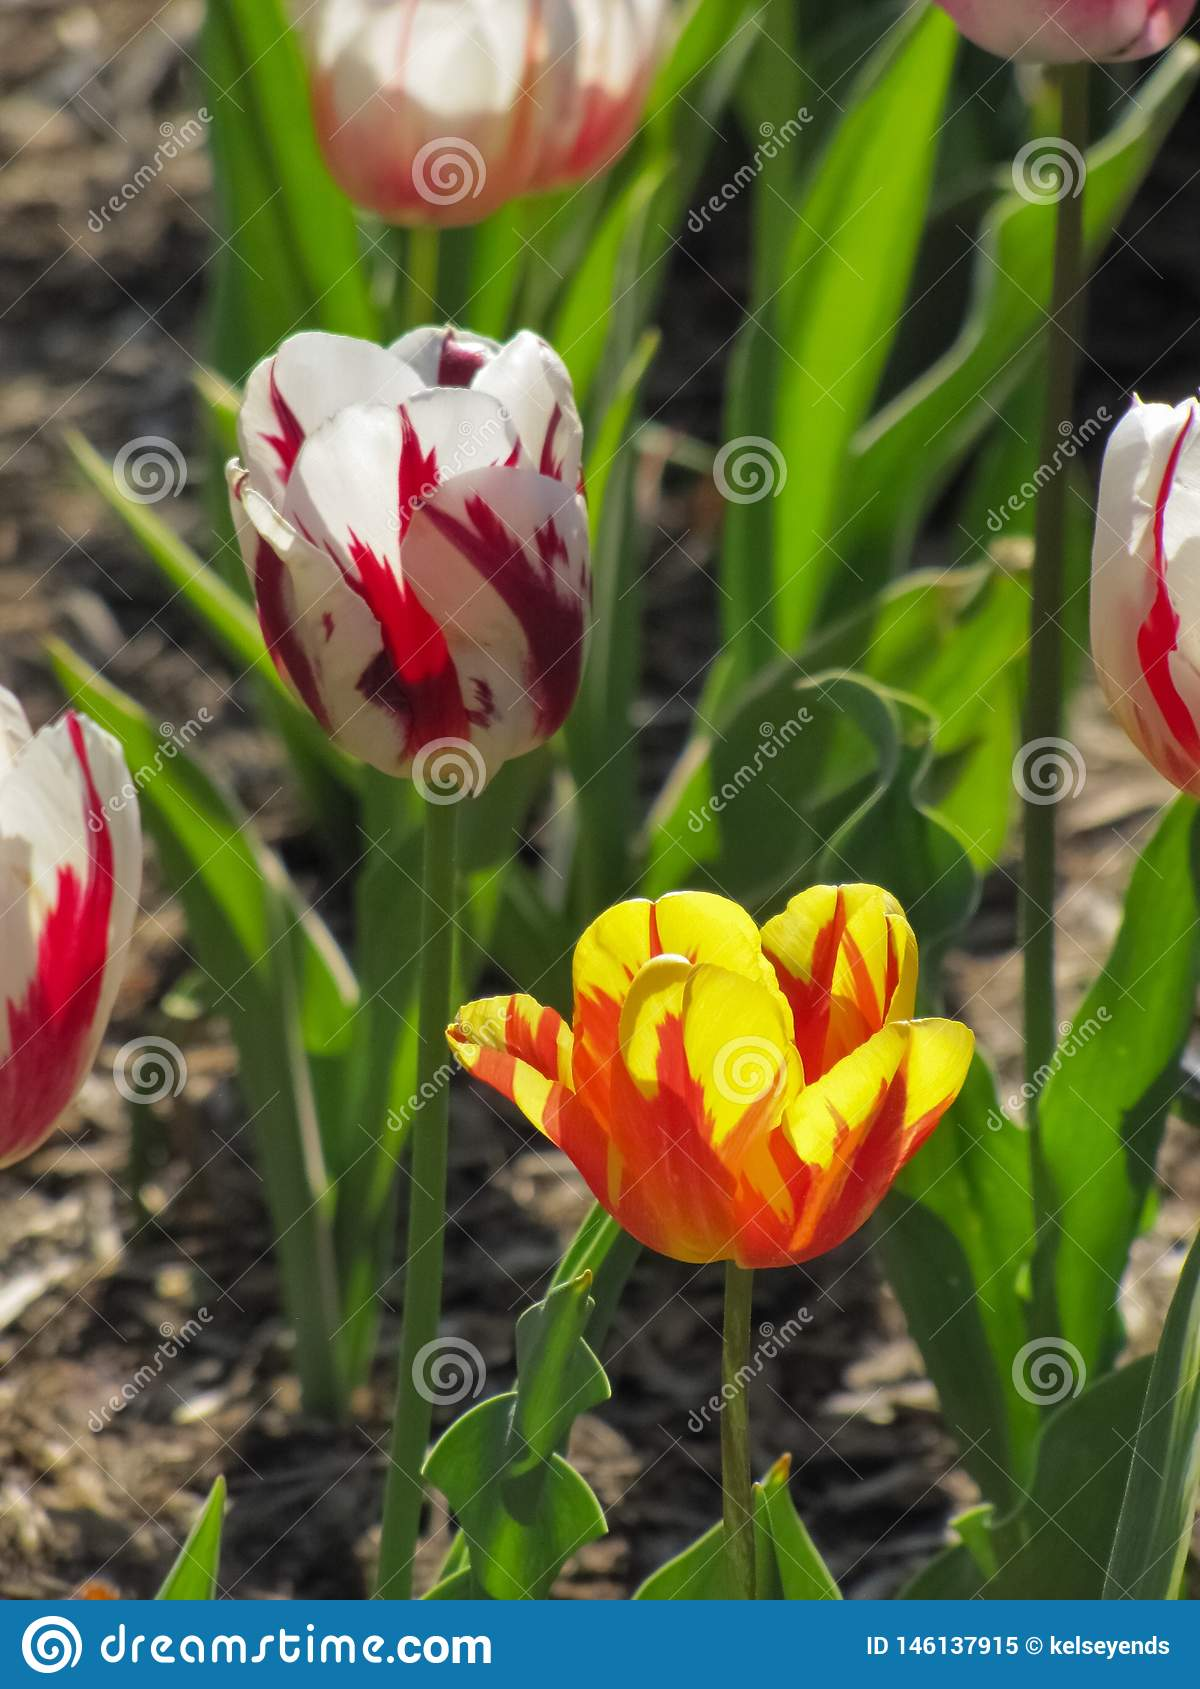 Red and White Tulip with Yellow and Orange Tulip